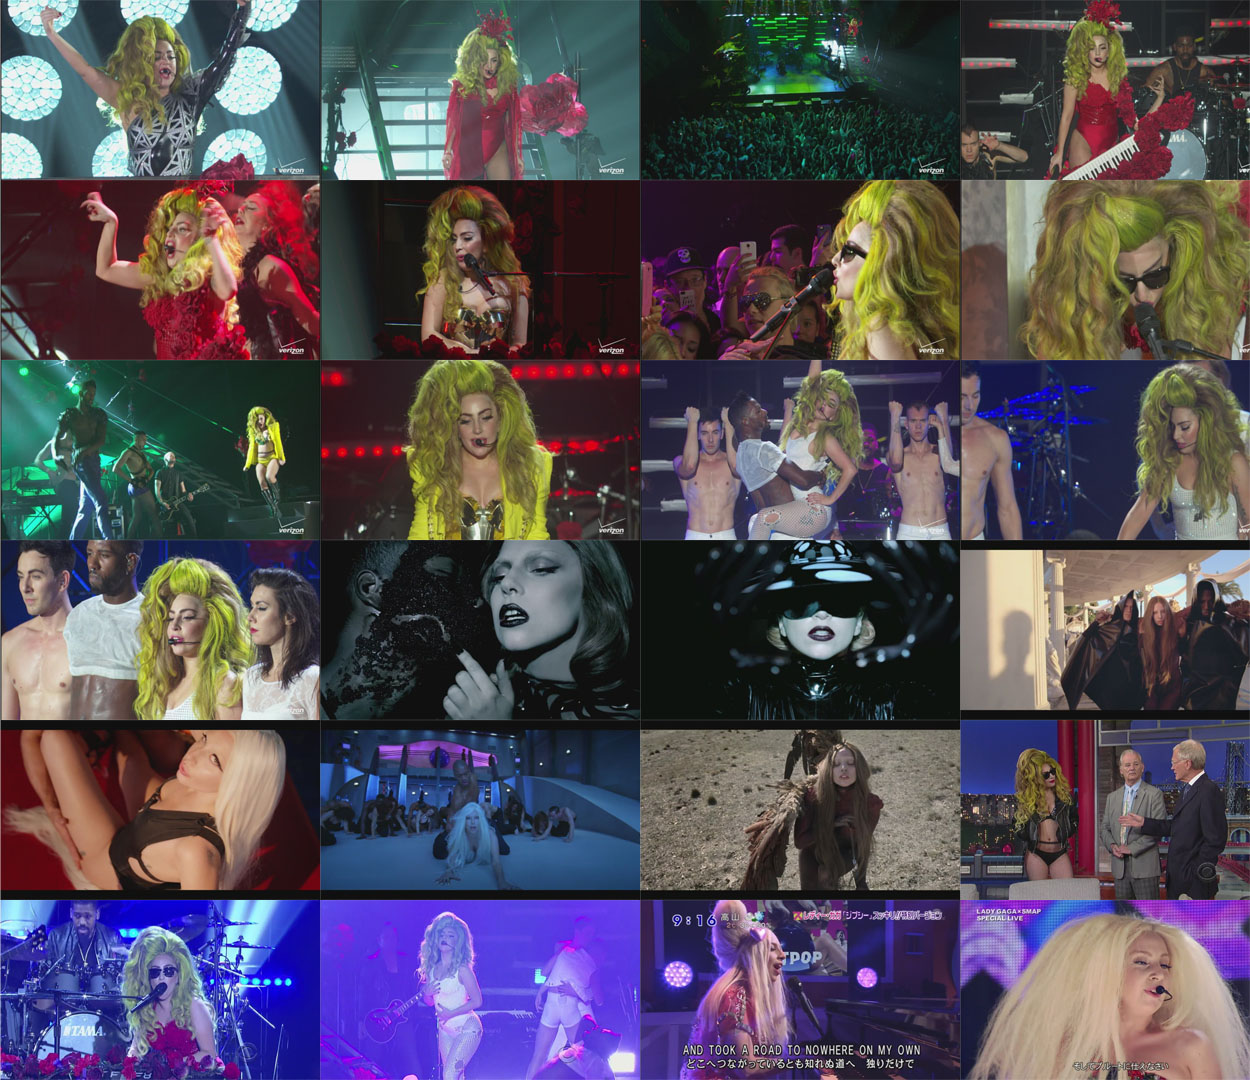 dvd lady gaga artpop artrave live at roseland captures